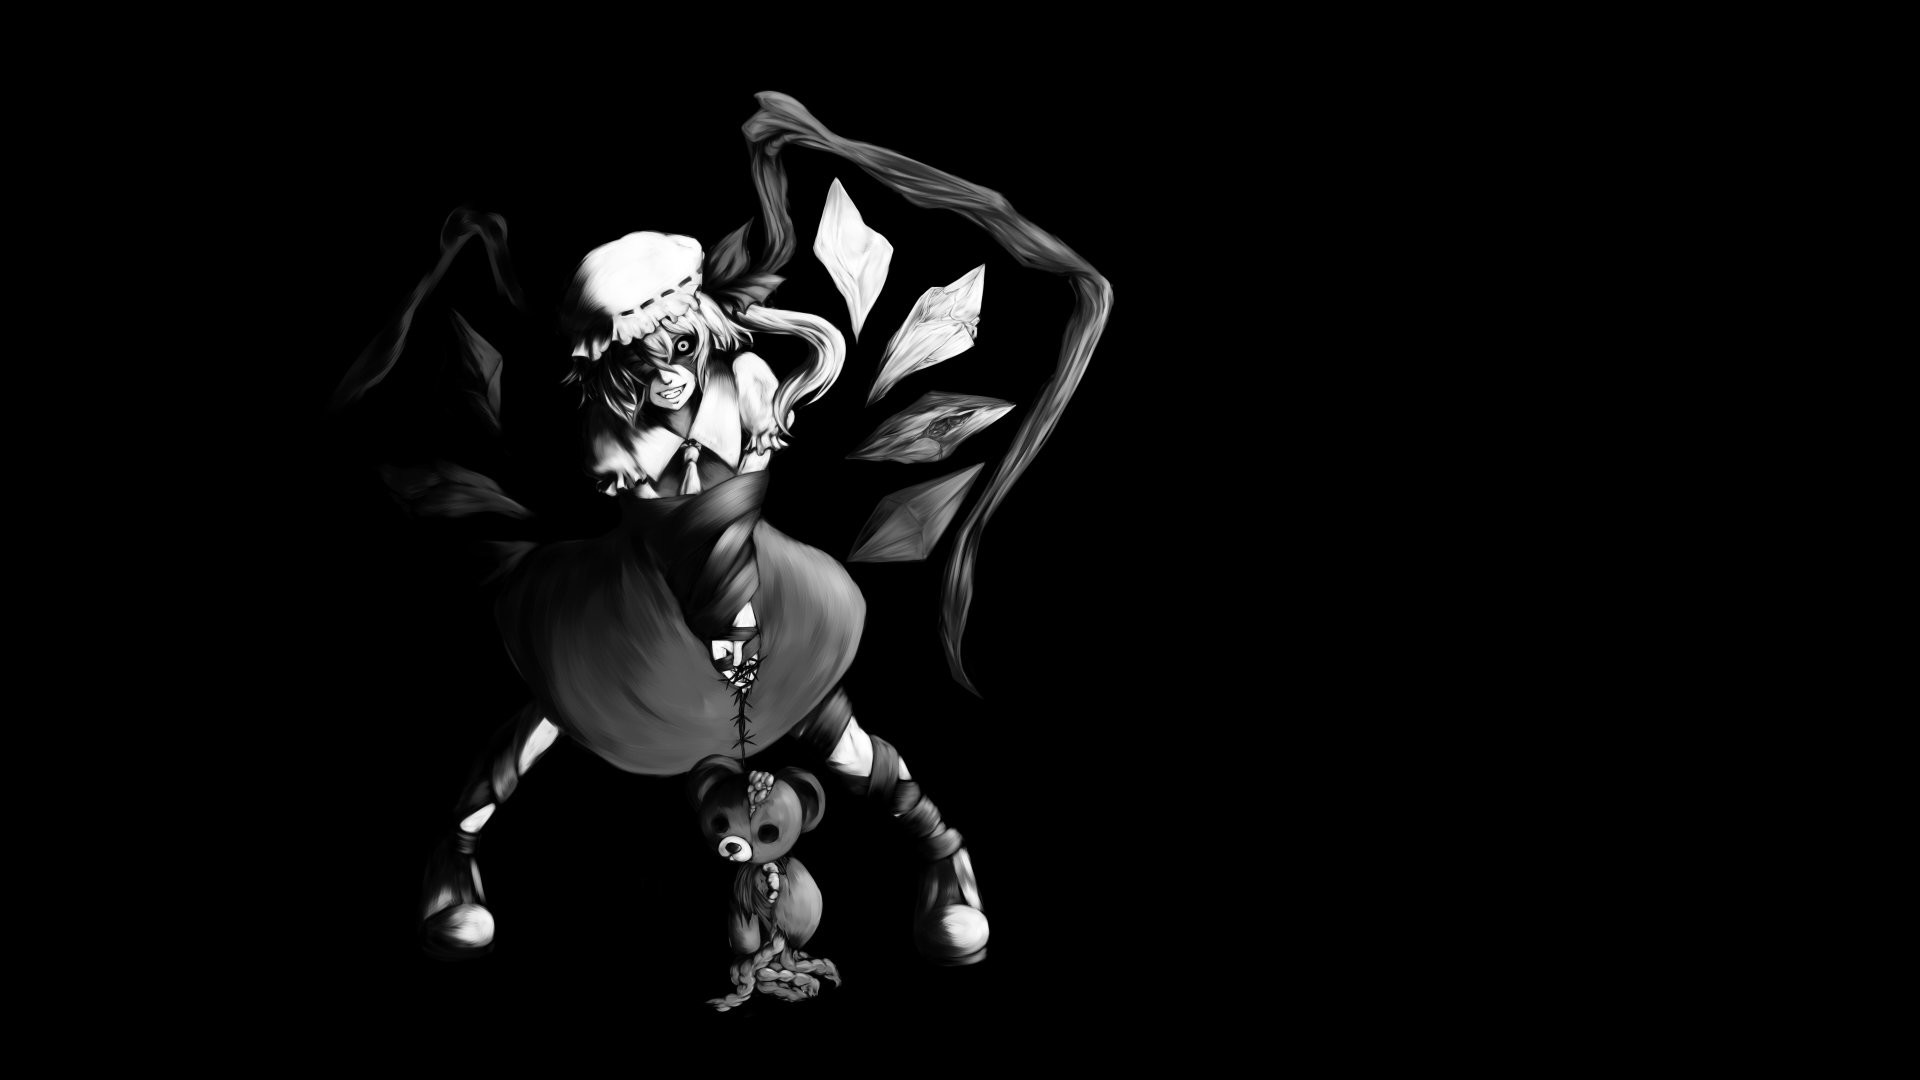 1920x1080 black and white video games Touhou wings black dark dress long hair  vampires crystals stuffed animals